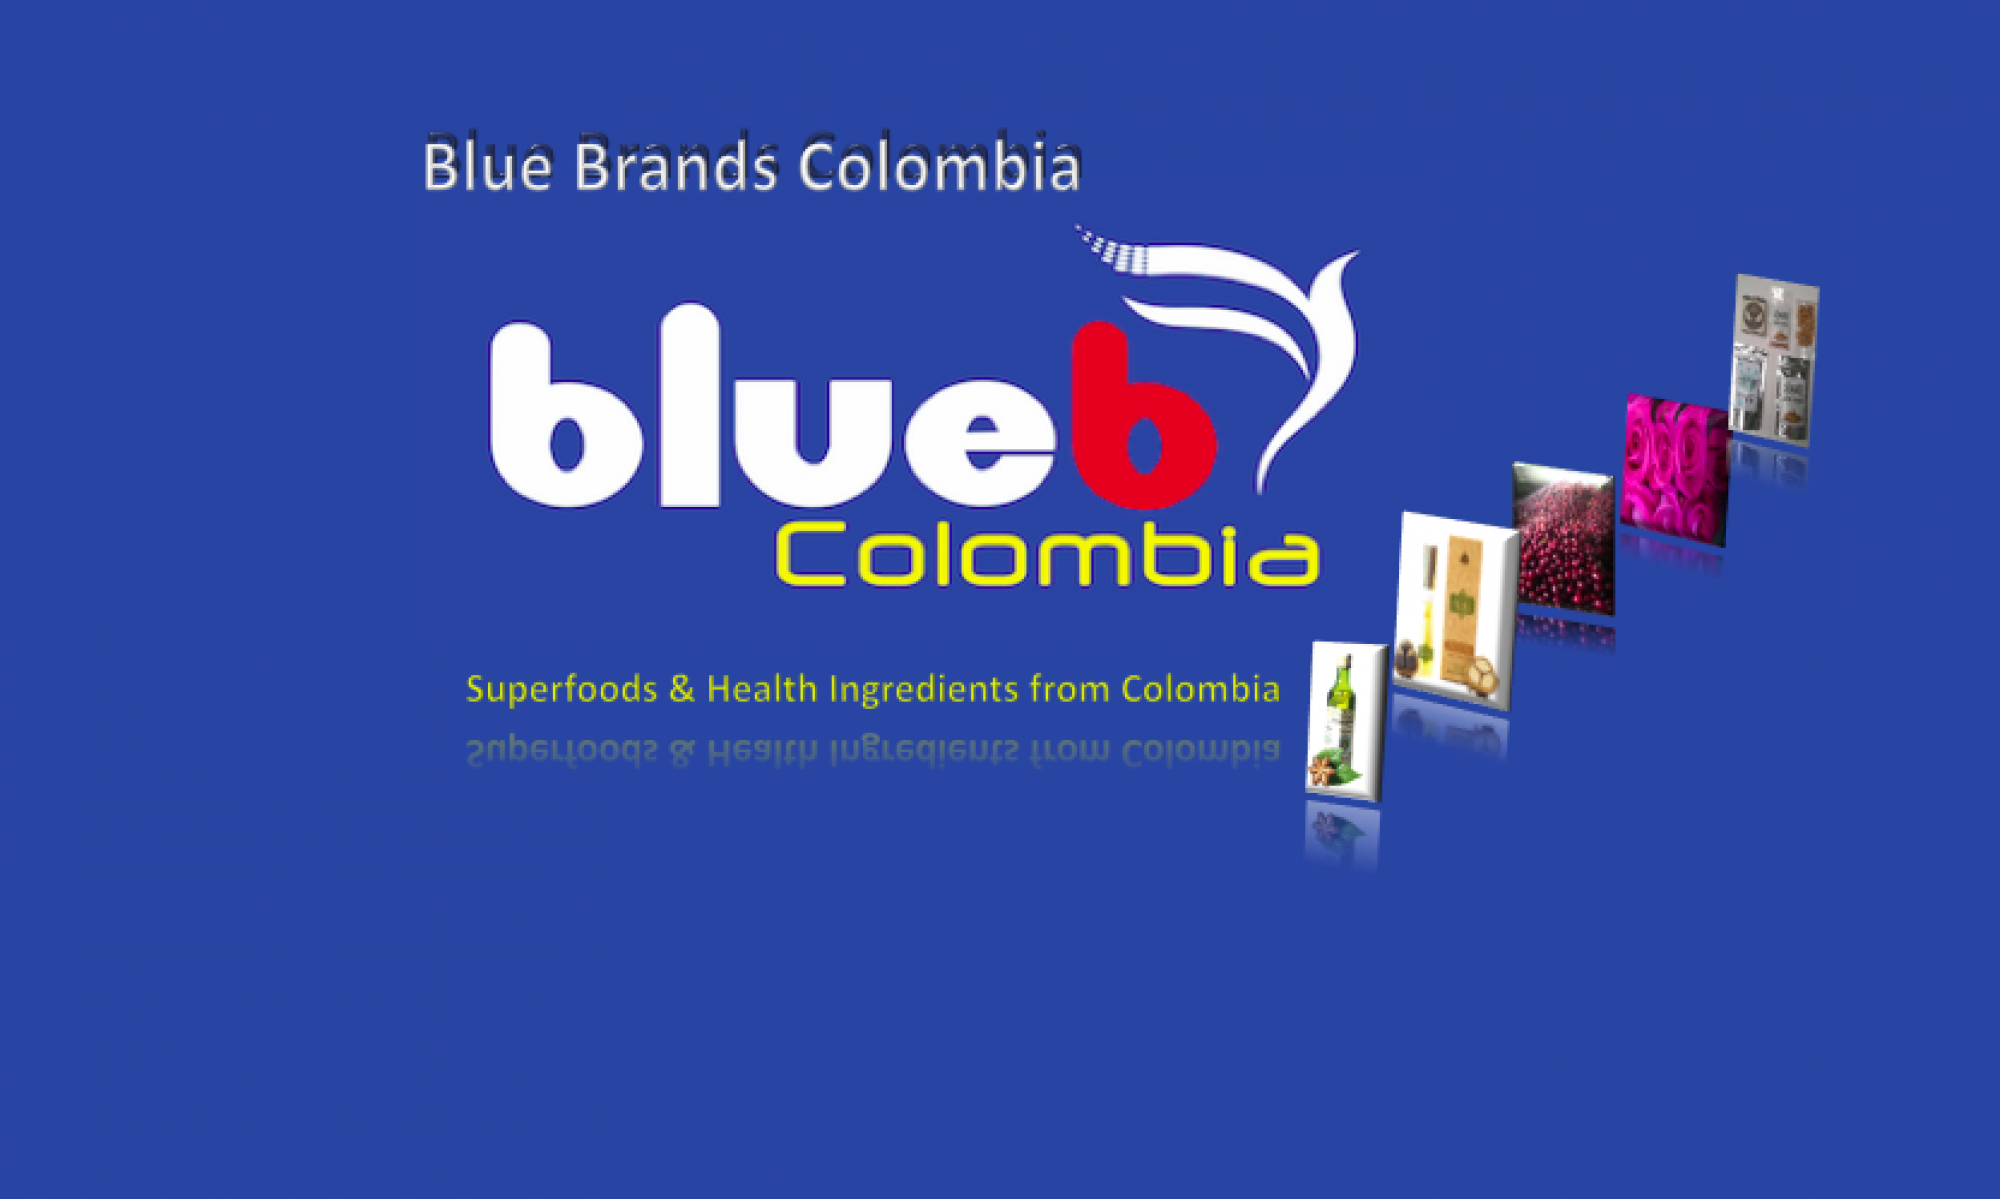 Blue Brands Colombia